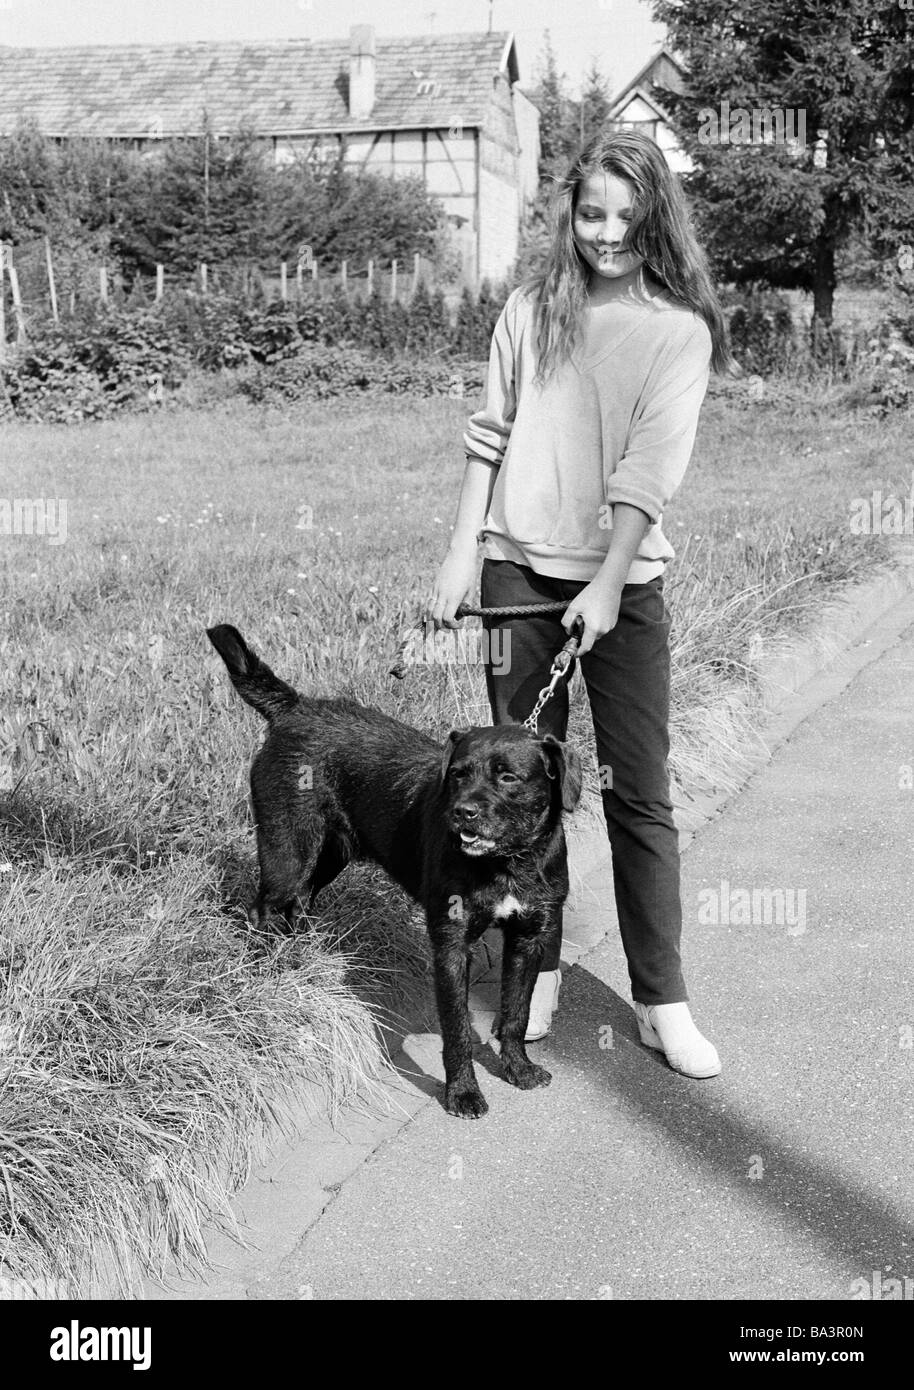 Eighties, black and white photo, human and animal, young girl walks a dog on a lead, aged 14 to 17 years, domestic - Stock Image